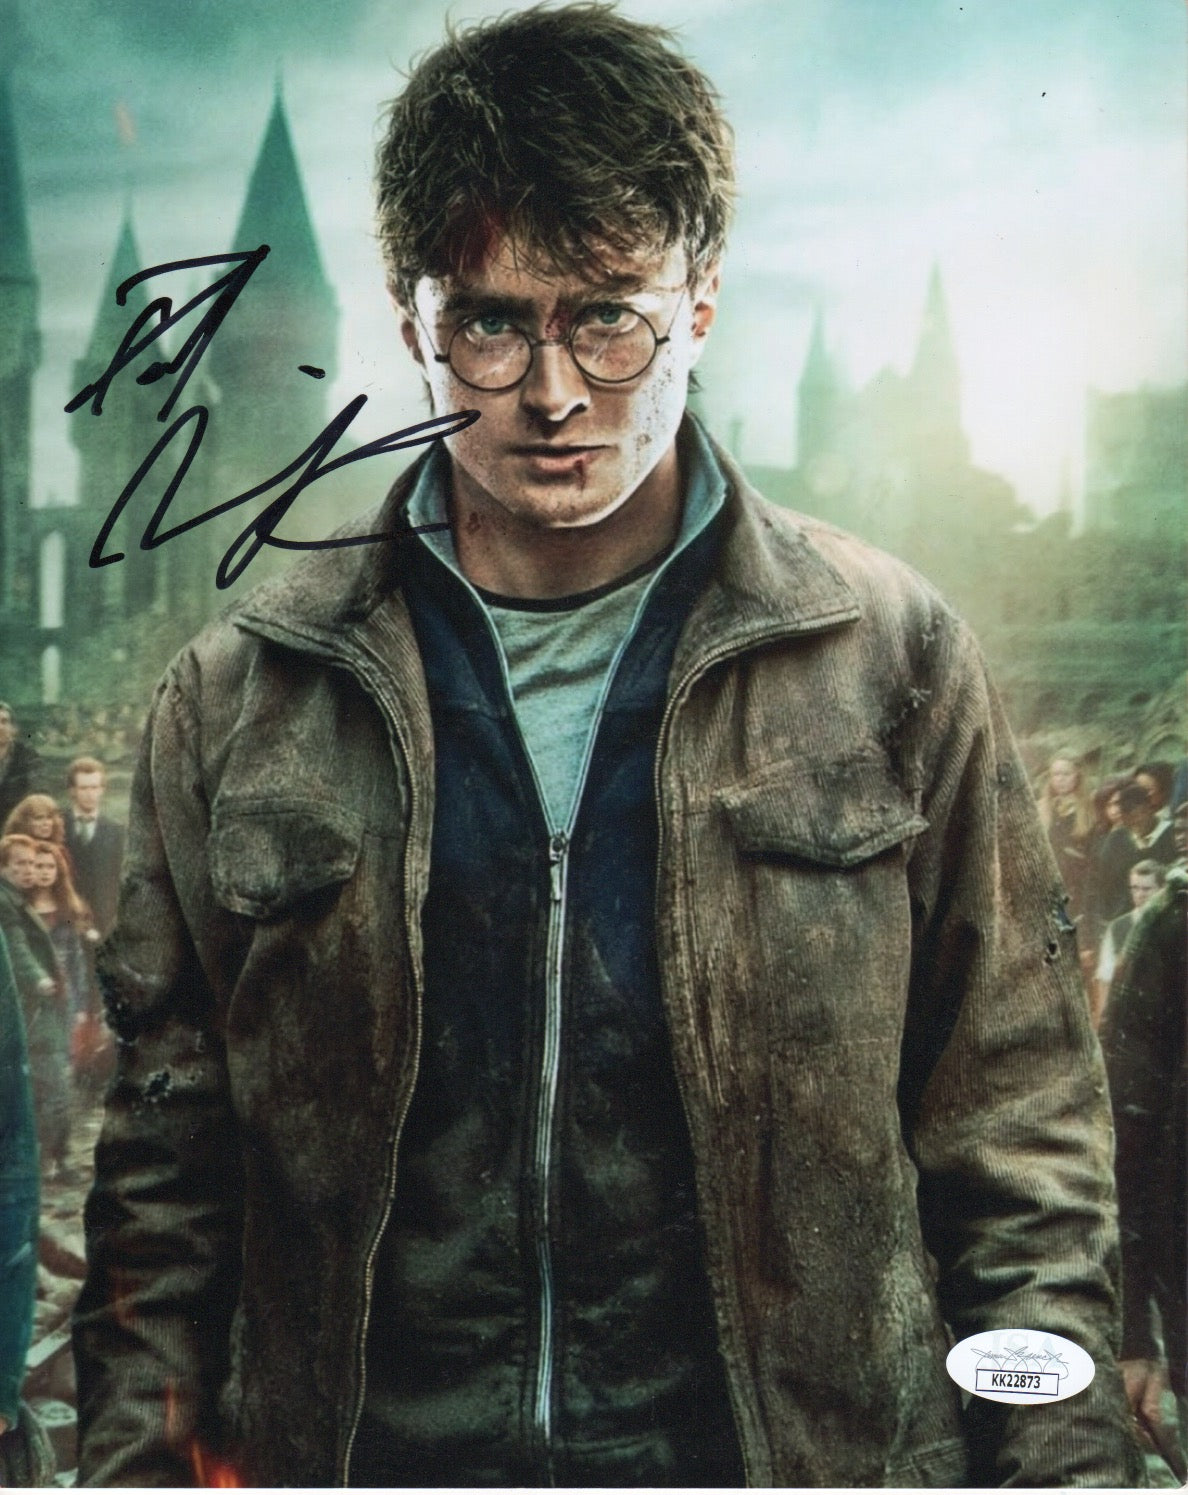 Daniel Radcliffe Harry Potter Signed Autograph 8x10 JSA Authentic Photo #20